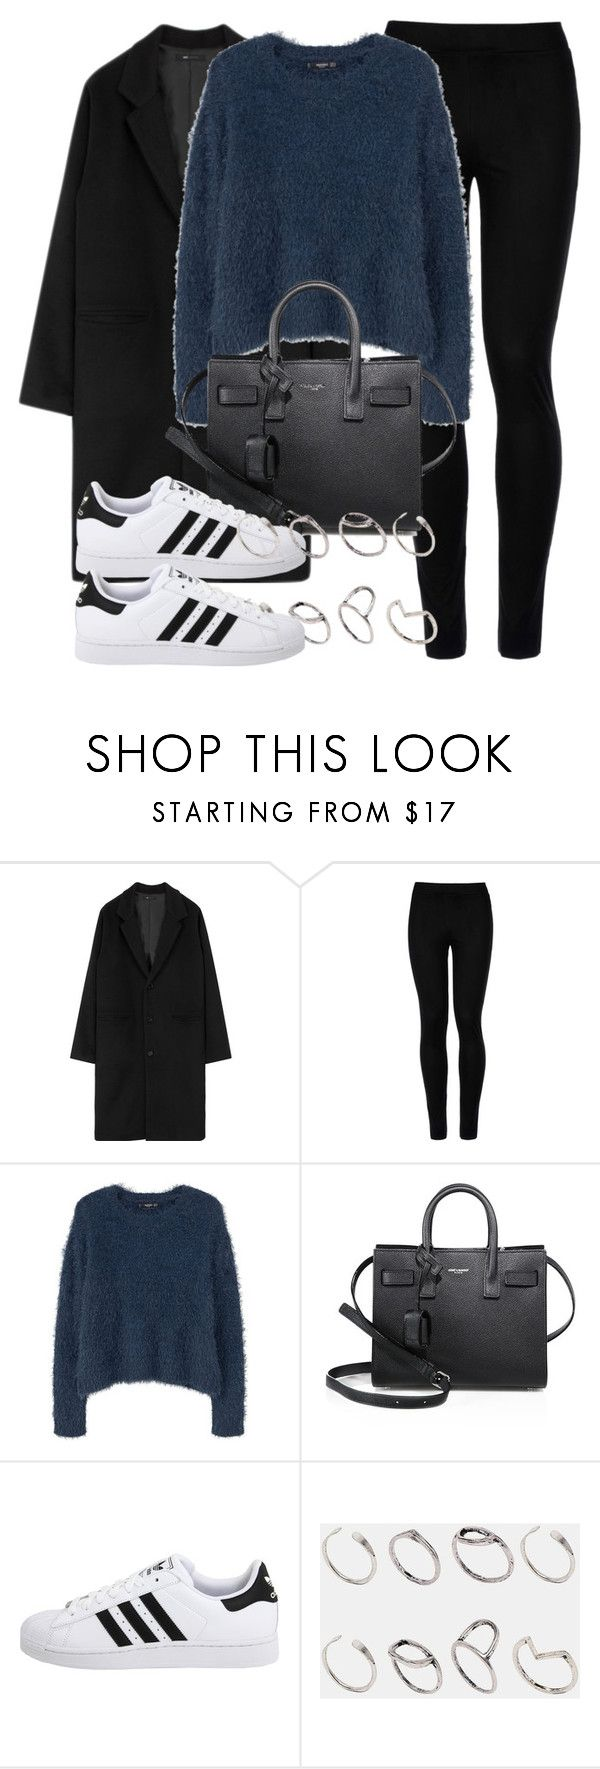 """""""Untitled #11869"""" by vany-alvarado ❤ liked on Polyvore featuring Wolford, MANGO, Yves Saint Laurent, adidas Originals and ASOS"""